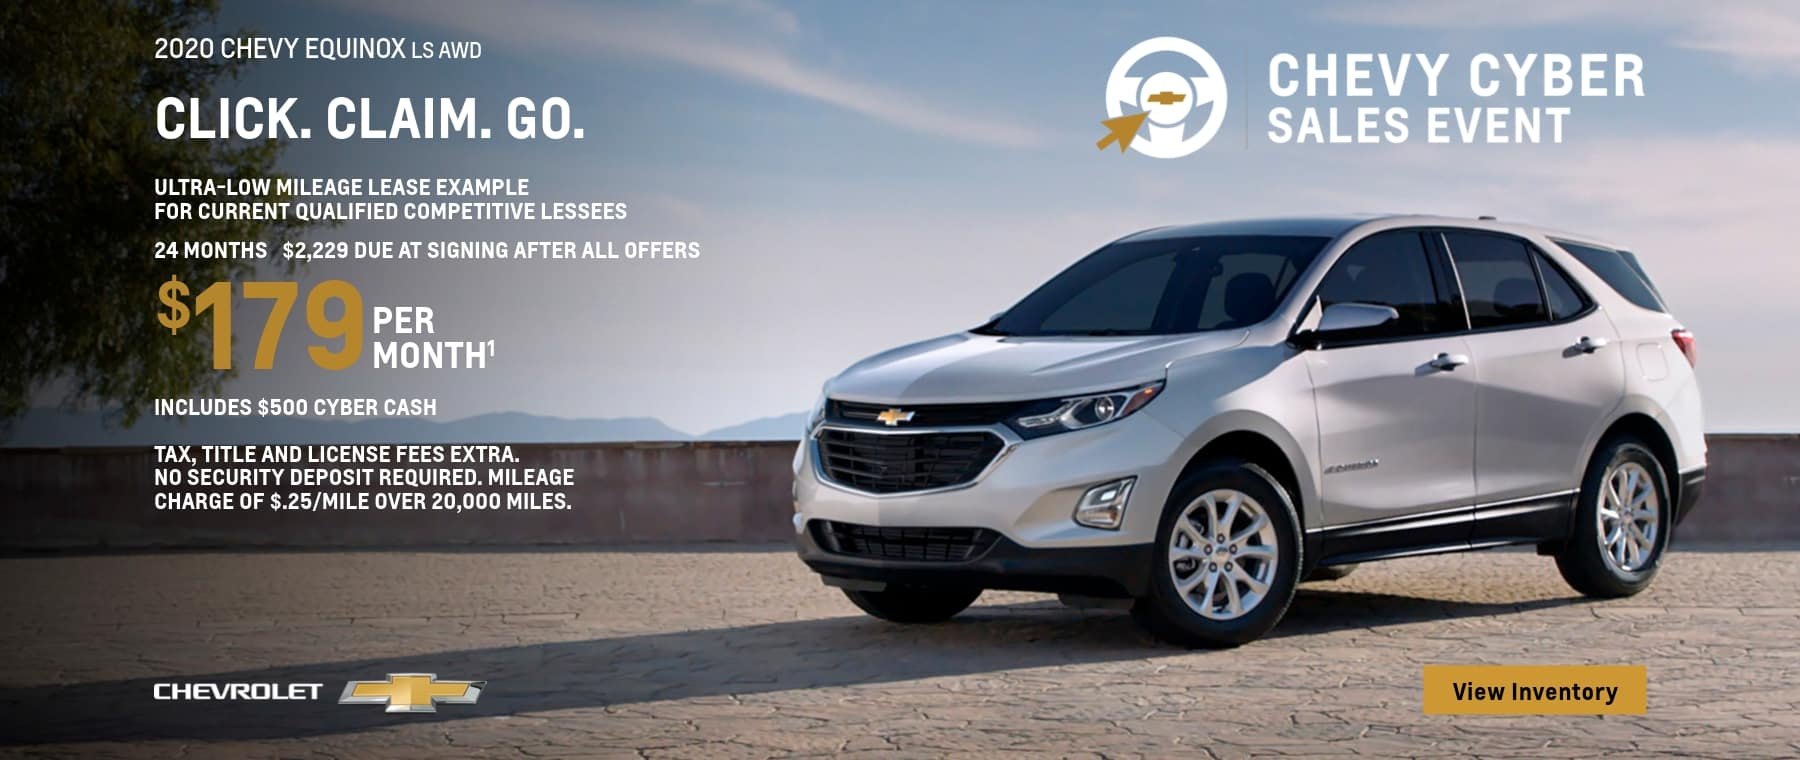 Ultra low mileage lease example for current qualified competitive lessee. 24 month, 2,229 due at signing, $179 per month. Includes $500 Cyber Cash.